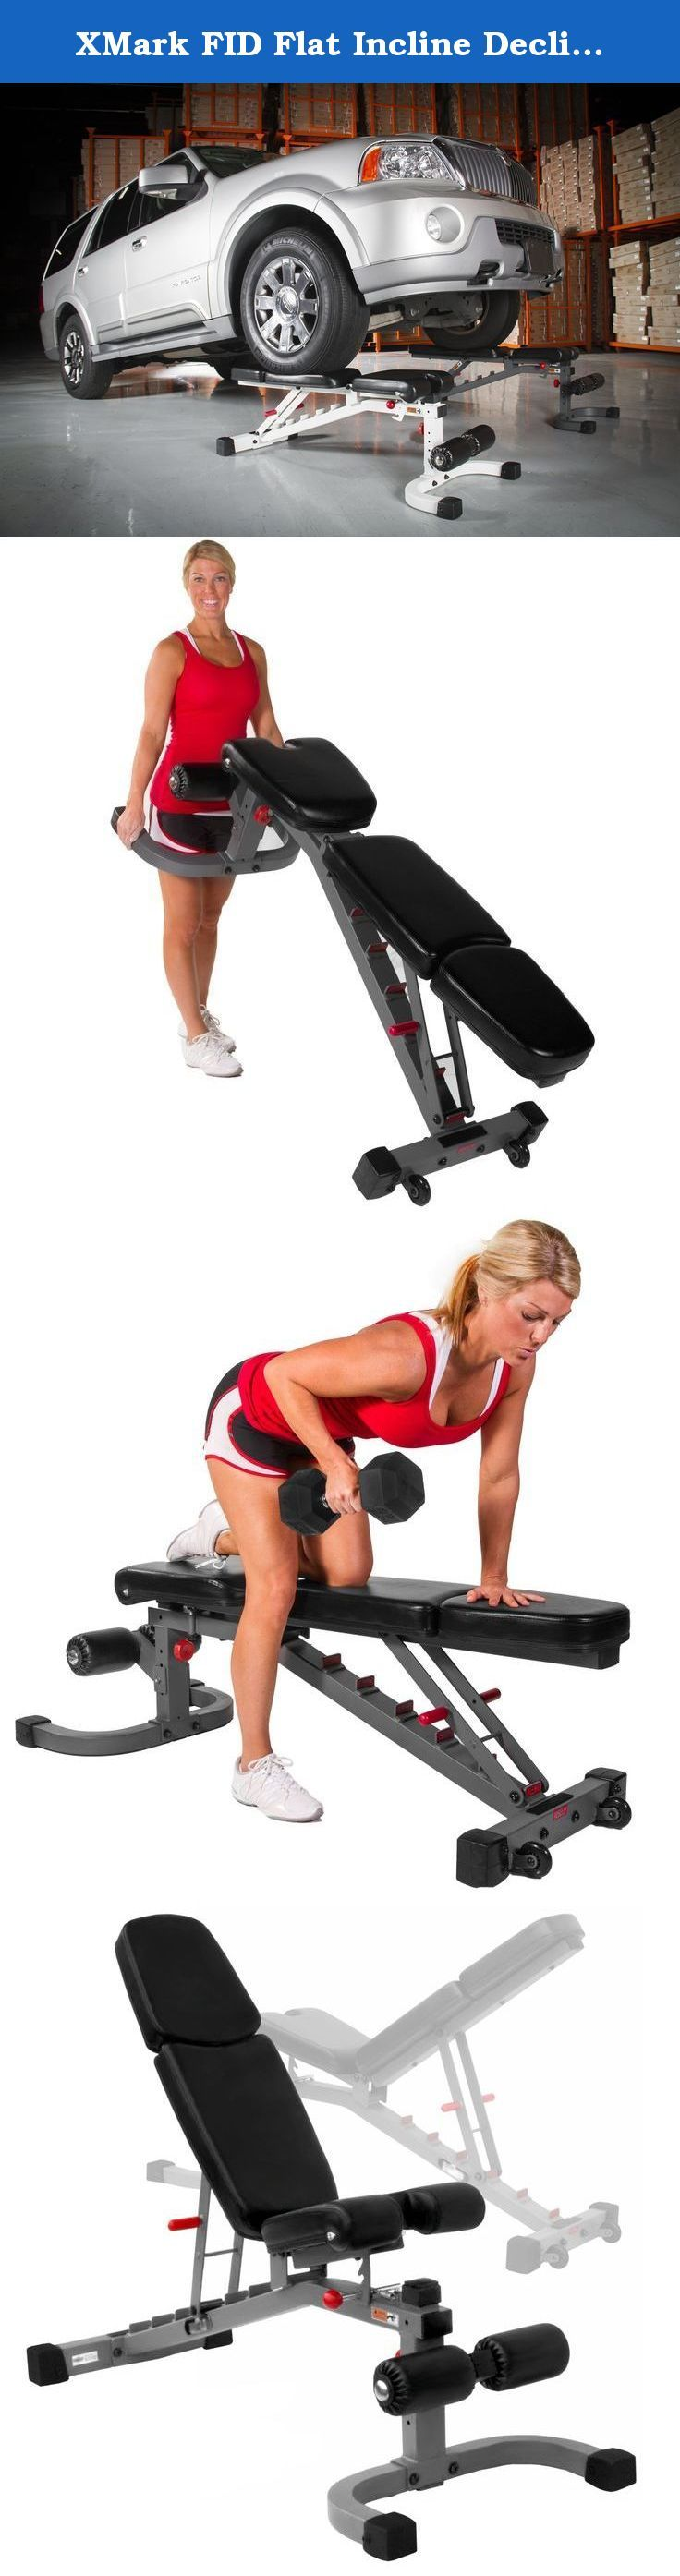 XMark FID Flat Incline Decline Weight Bench XM-7604. XMark FID Flat Incline Decline Weight Bench XM-7604 The XMark FID Bench boasts a 1500 lb. weight capacity and allows you to perform bench-assisted exercises from every angle without the need for multiple benches. The 7-position adjustable FID Bench back pad adjusts from decline to military position quickly and easily while the 3-position rolled seat provides ergonomically correct angles for decline, flat and incline bench positions. As…